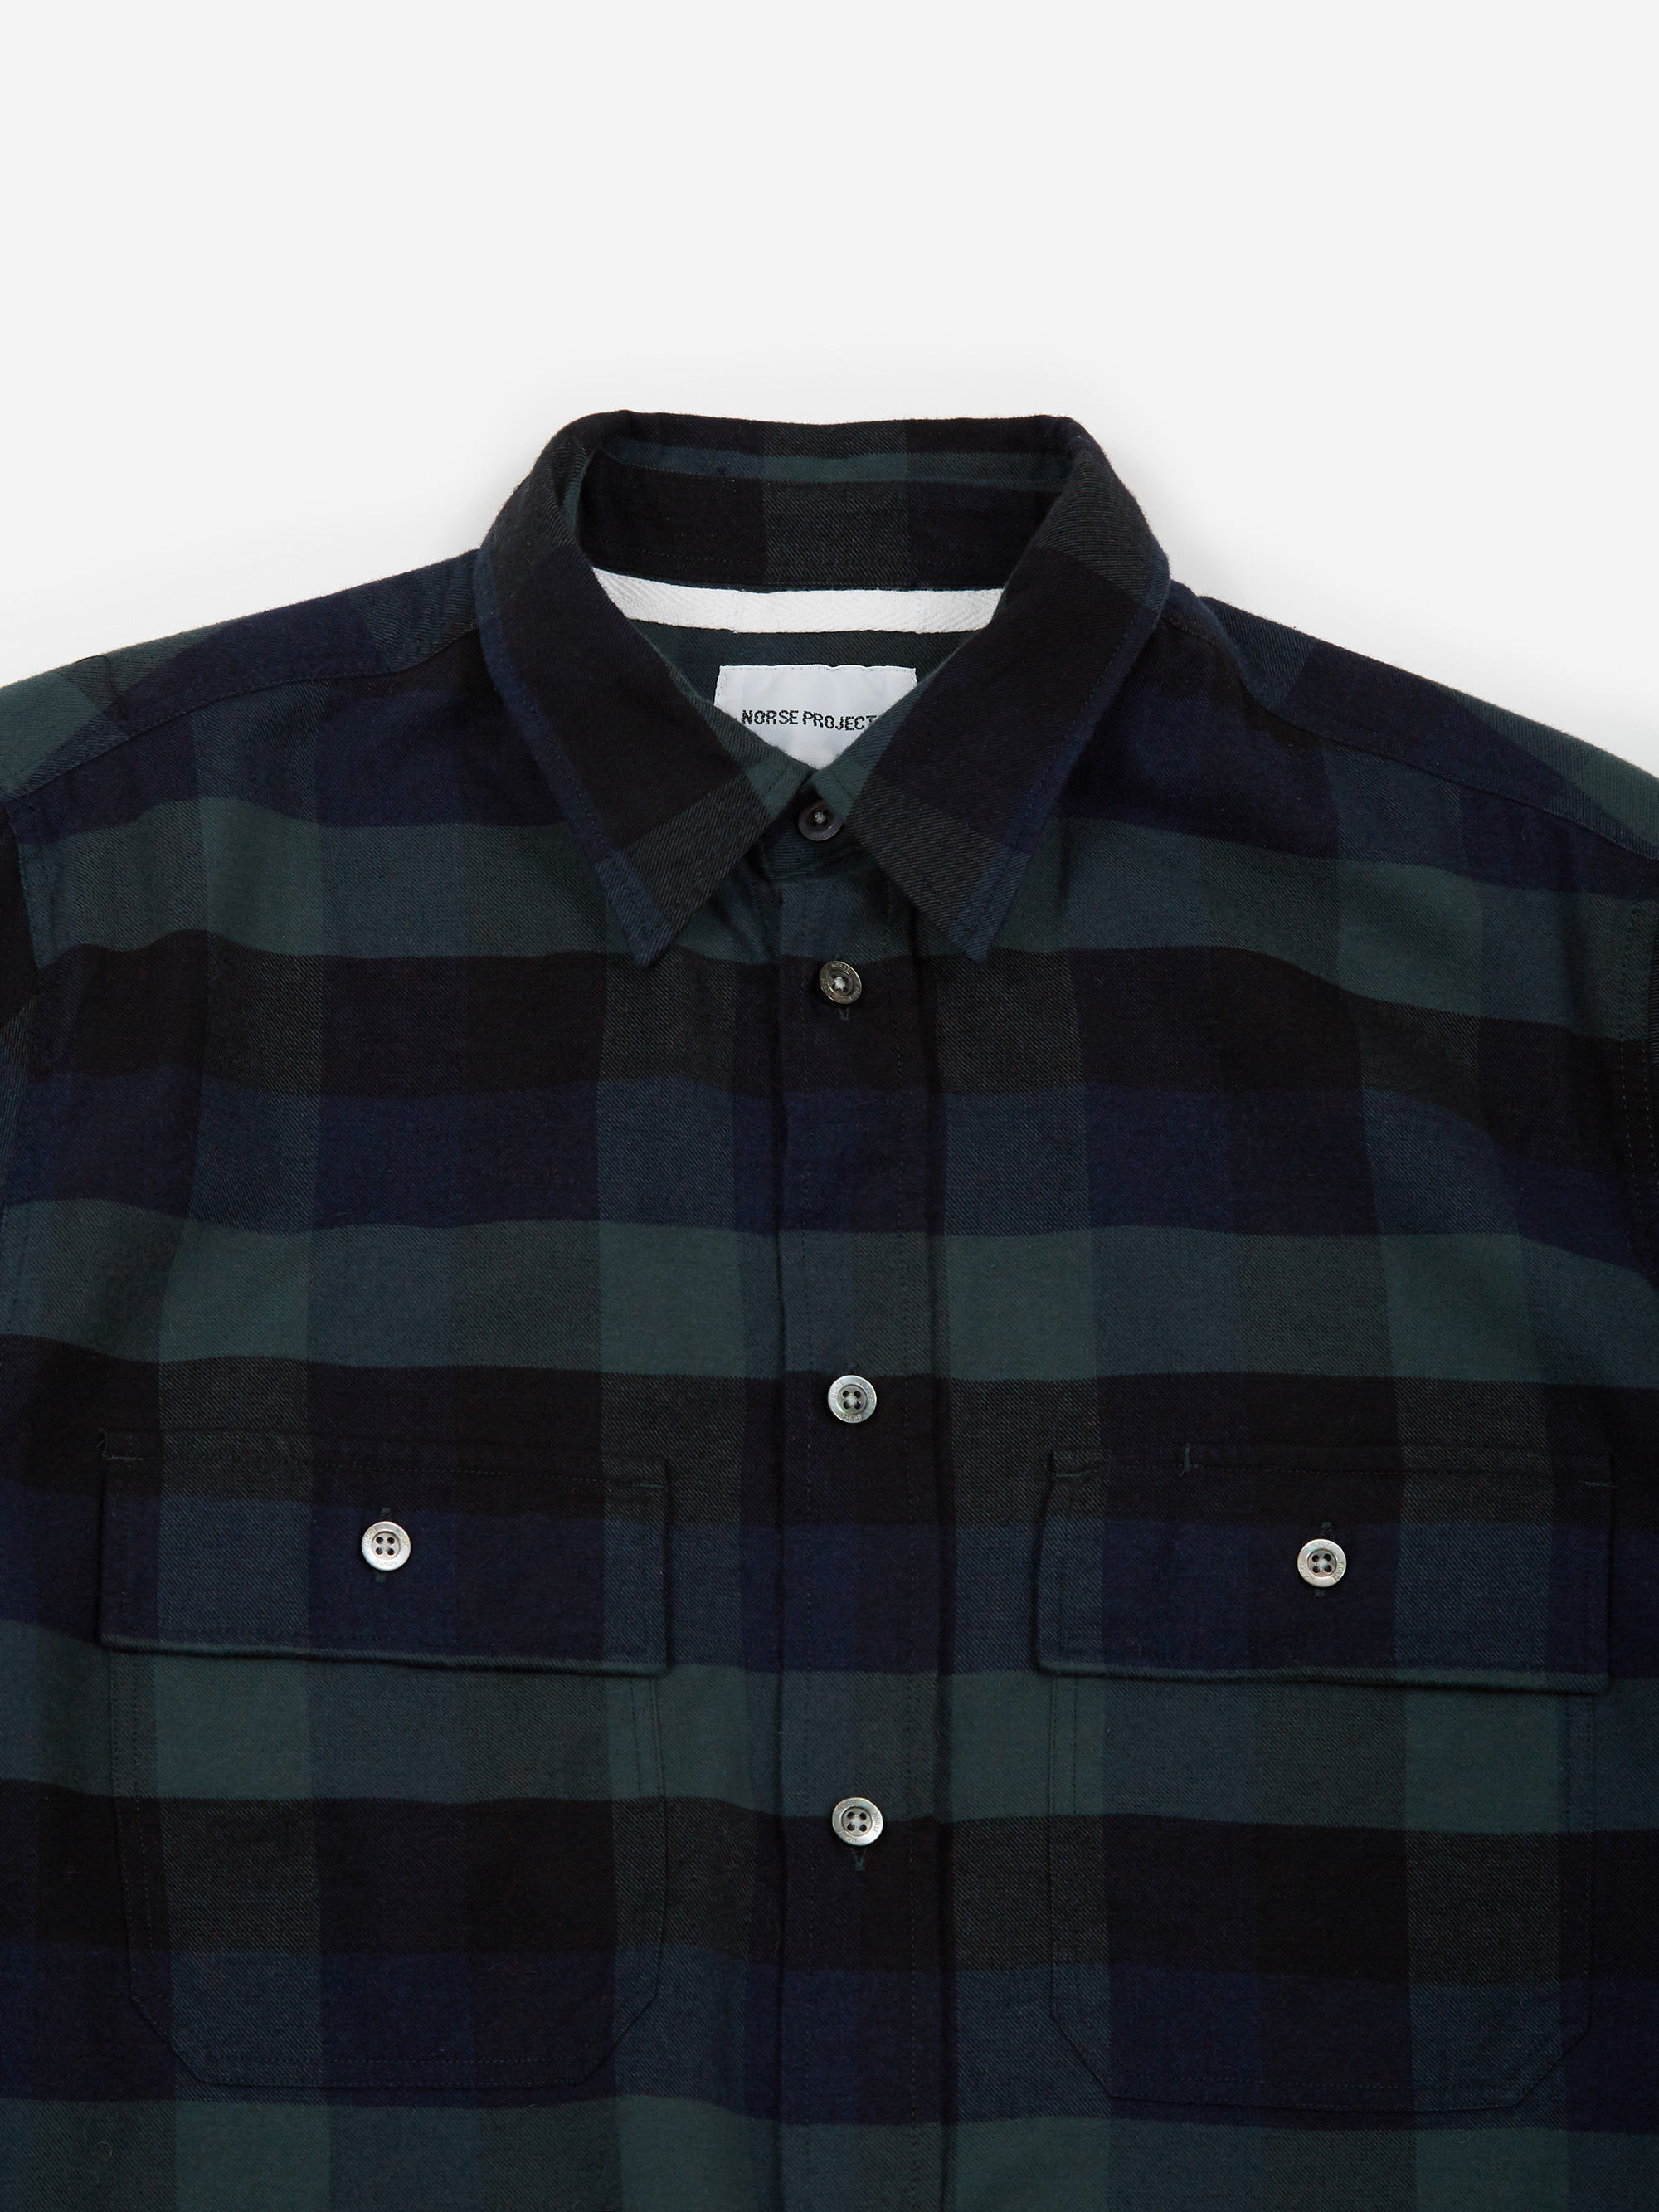 867f703c3 Norse Projects Villads Brushed Flannel Check - Dark Navy